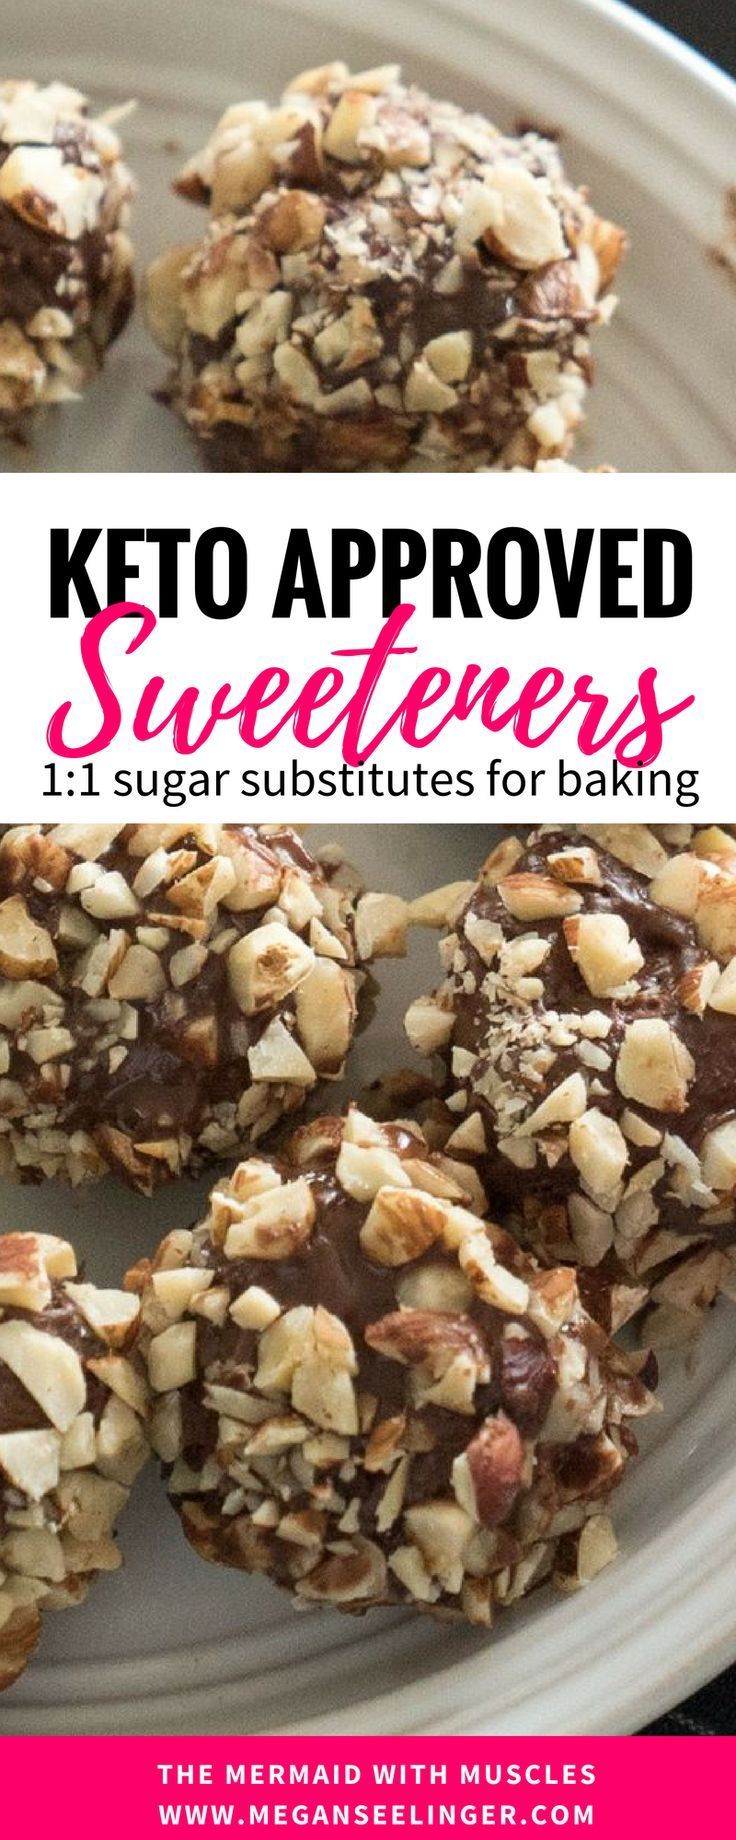 On a keto diet sugar is clearly not a low carb option and